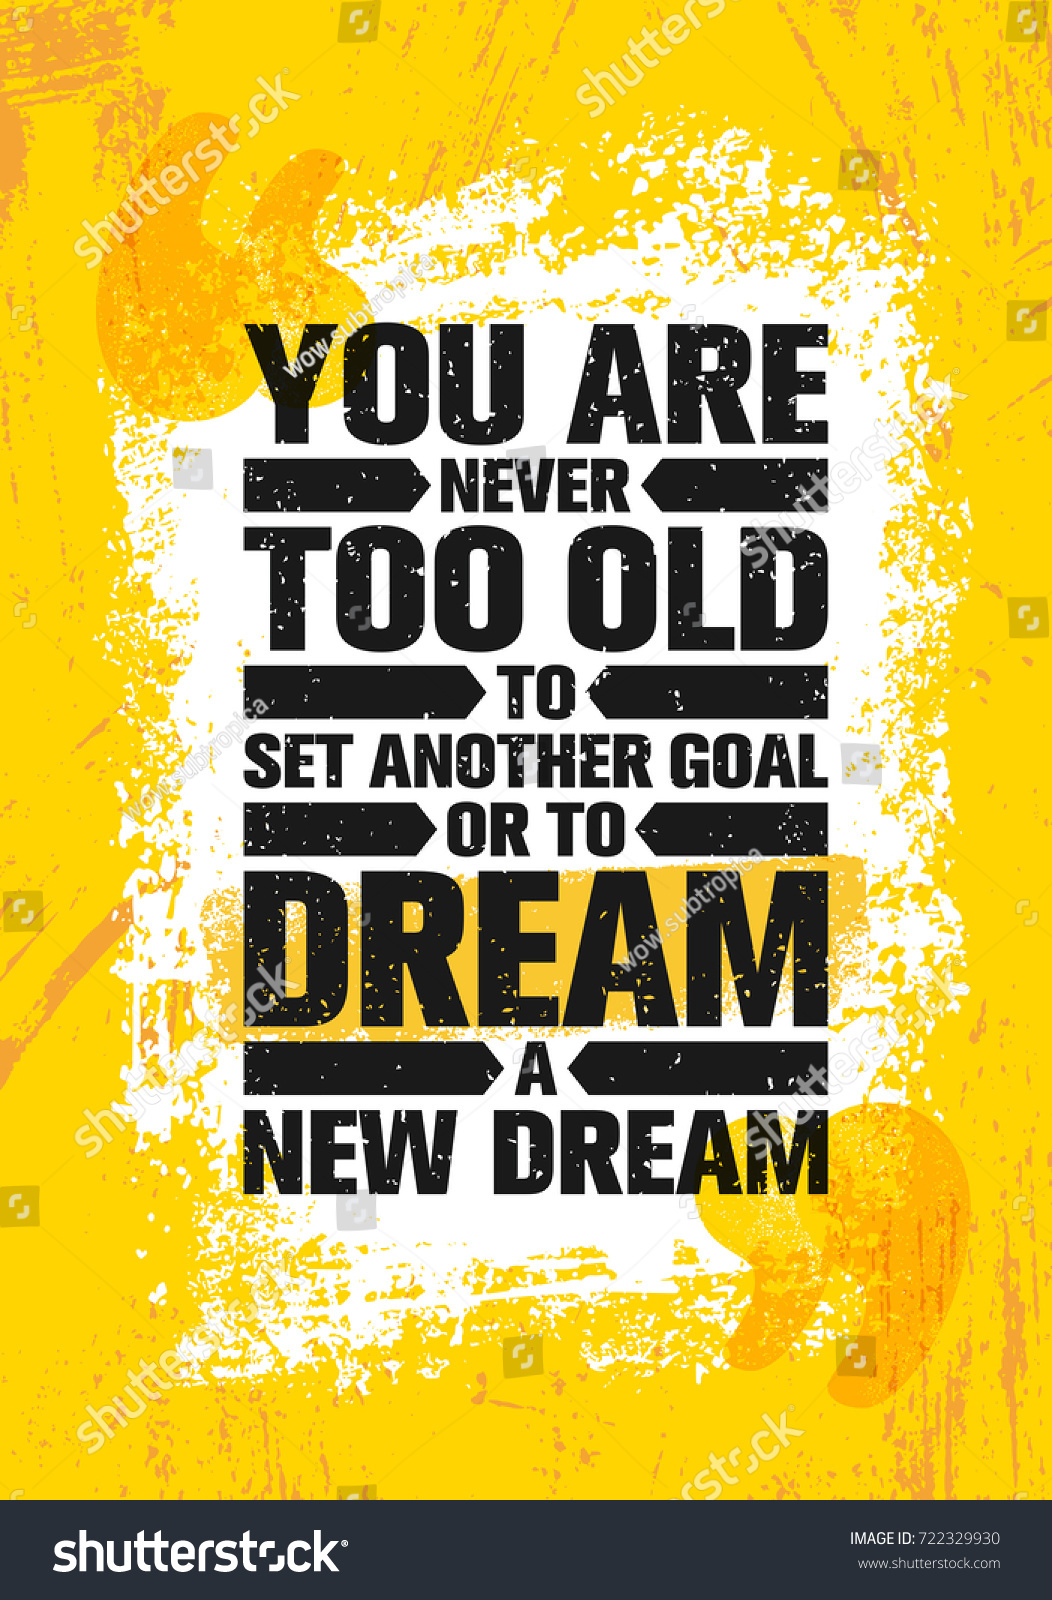 You never old set another goal stock vector 722329930 shutterstock you are never too old to set another goal or to dream a new dream pronofoot35fo Gallery